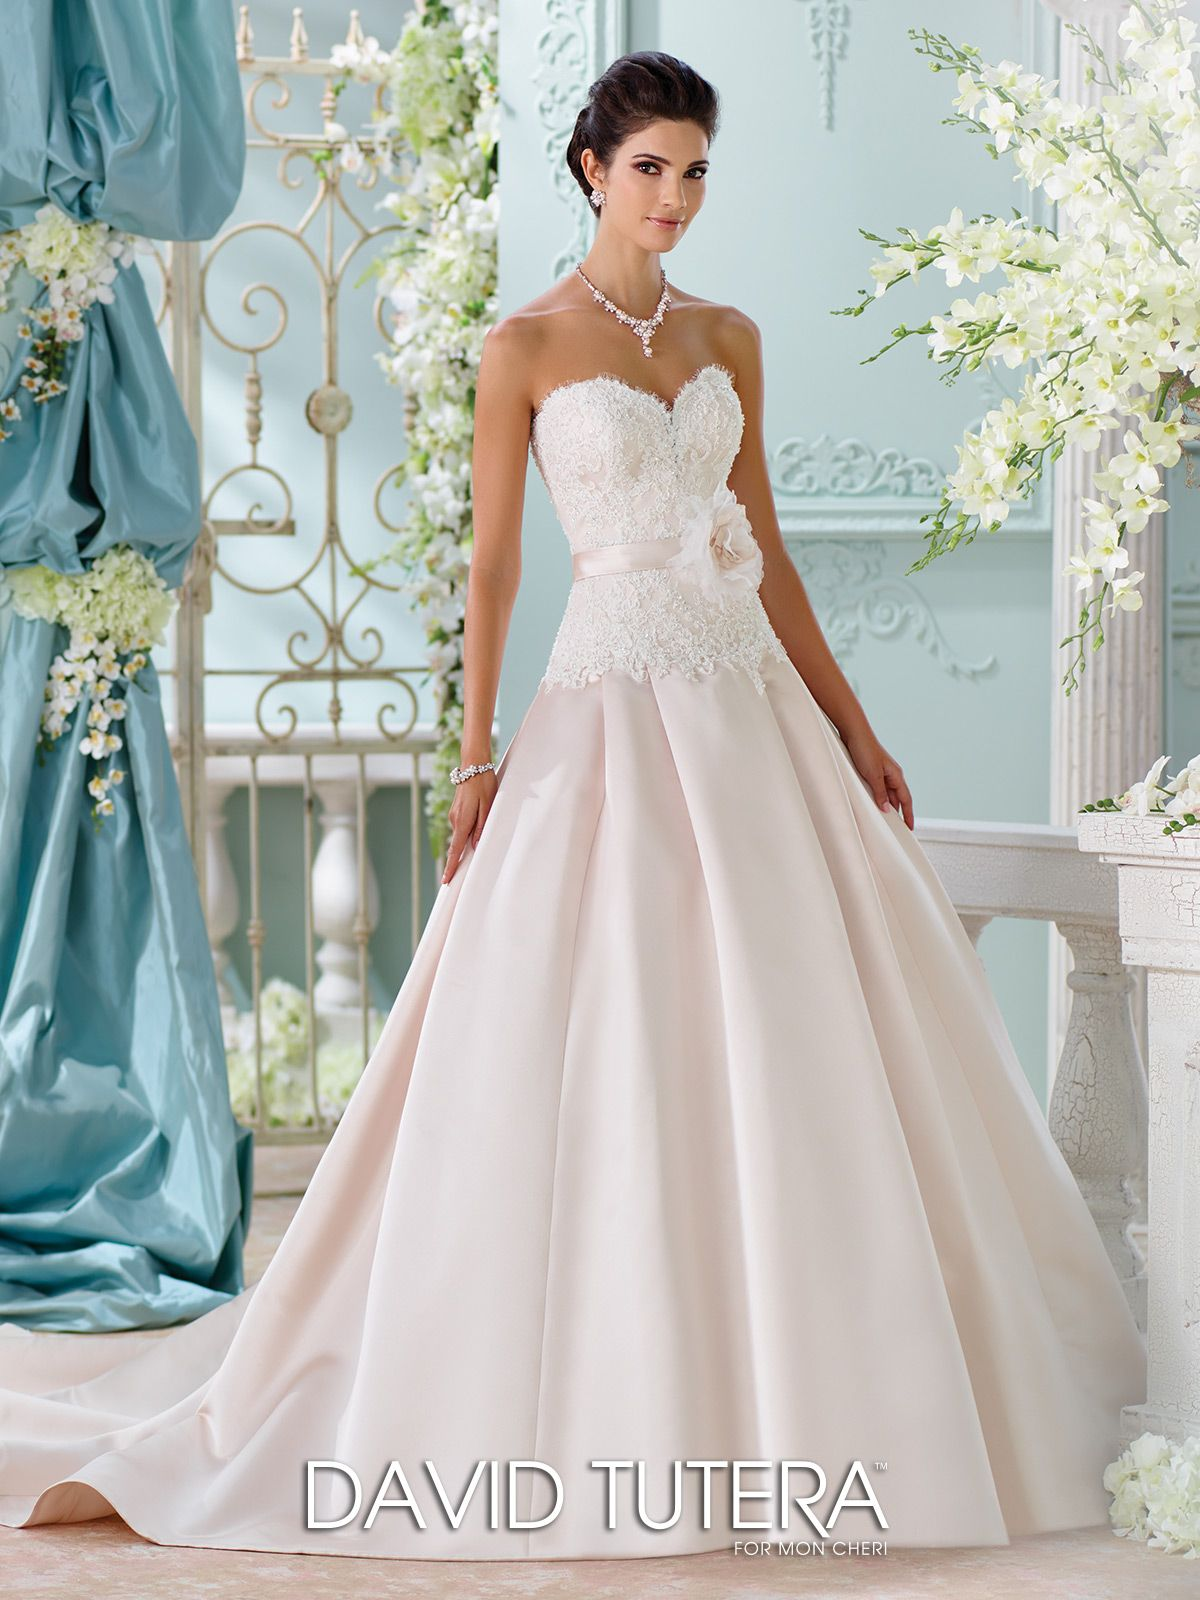 Champagne Satin & Hand-Beaded Lace Wedding Dress- 116215 Lucienne ...